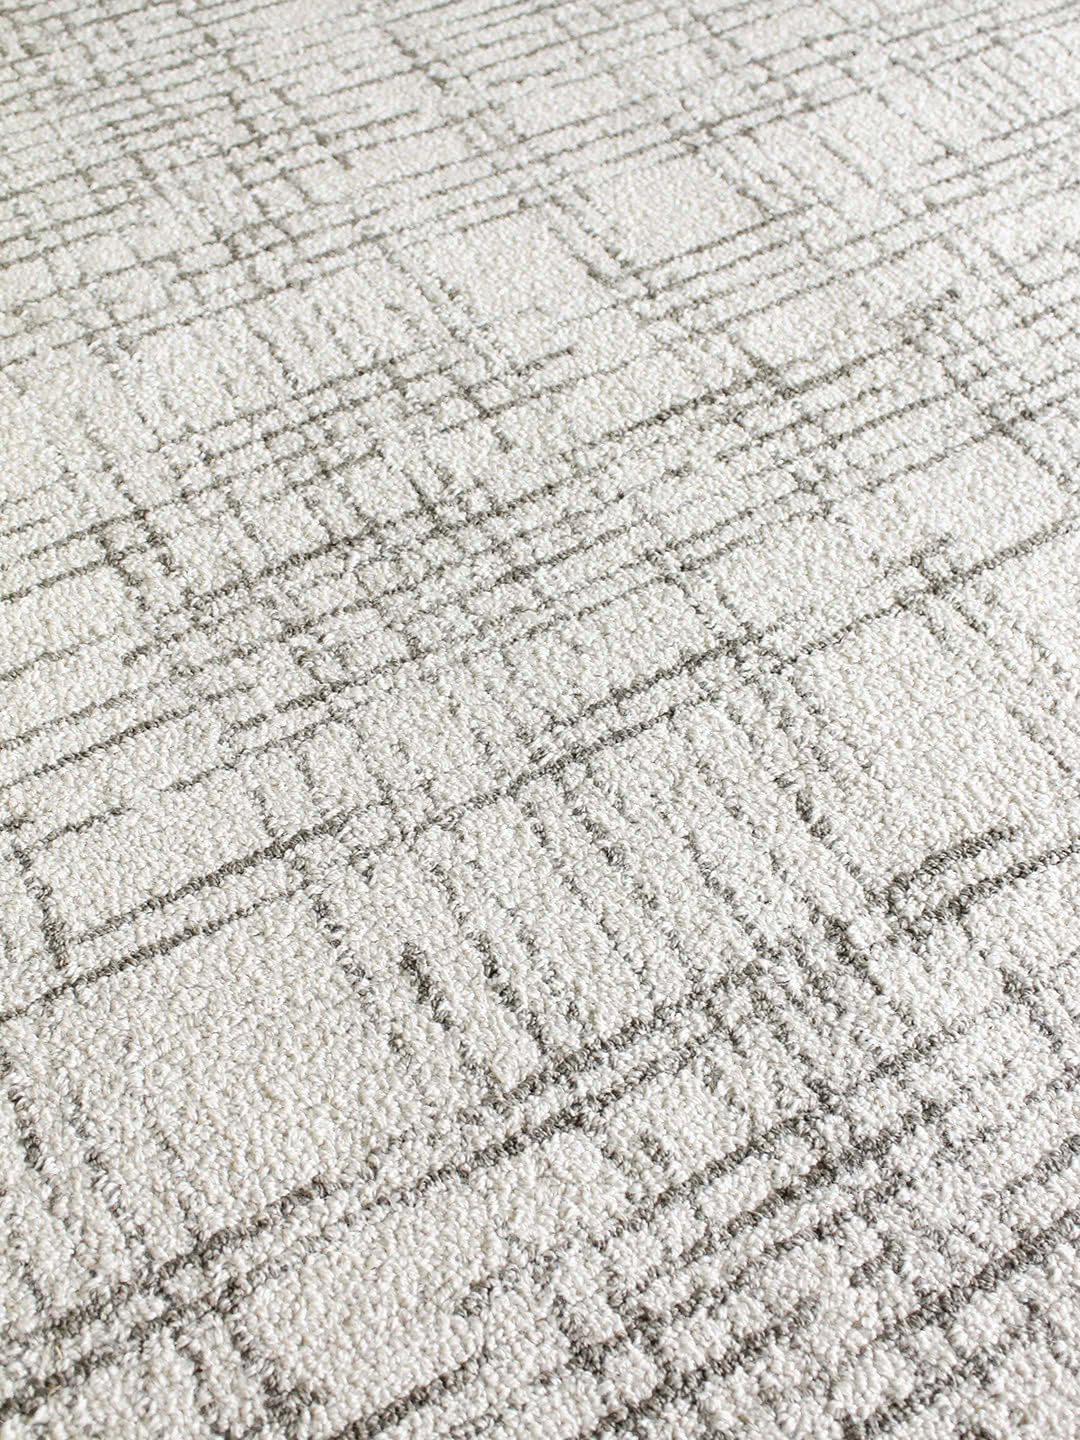 Stone Neutral detail wool blend rugs Perth